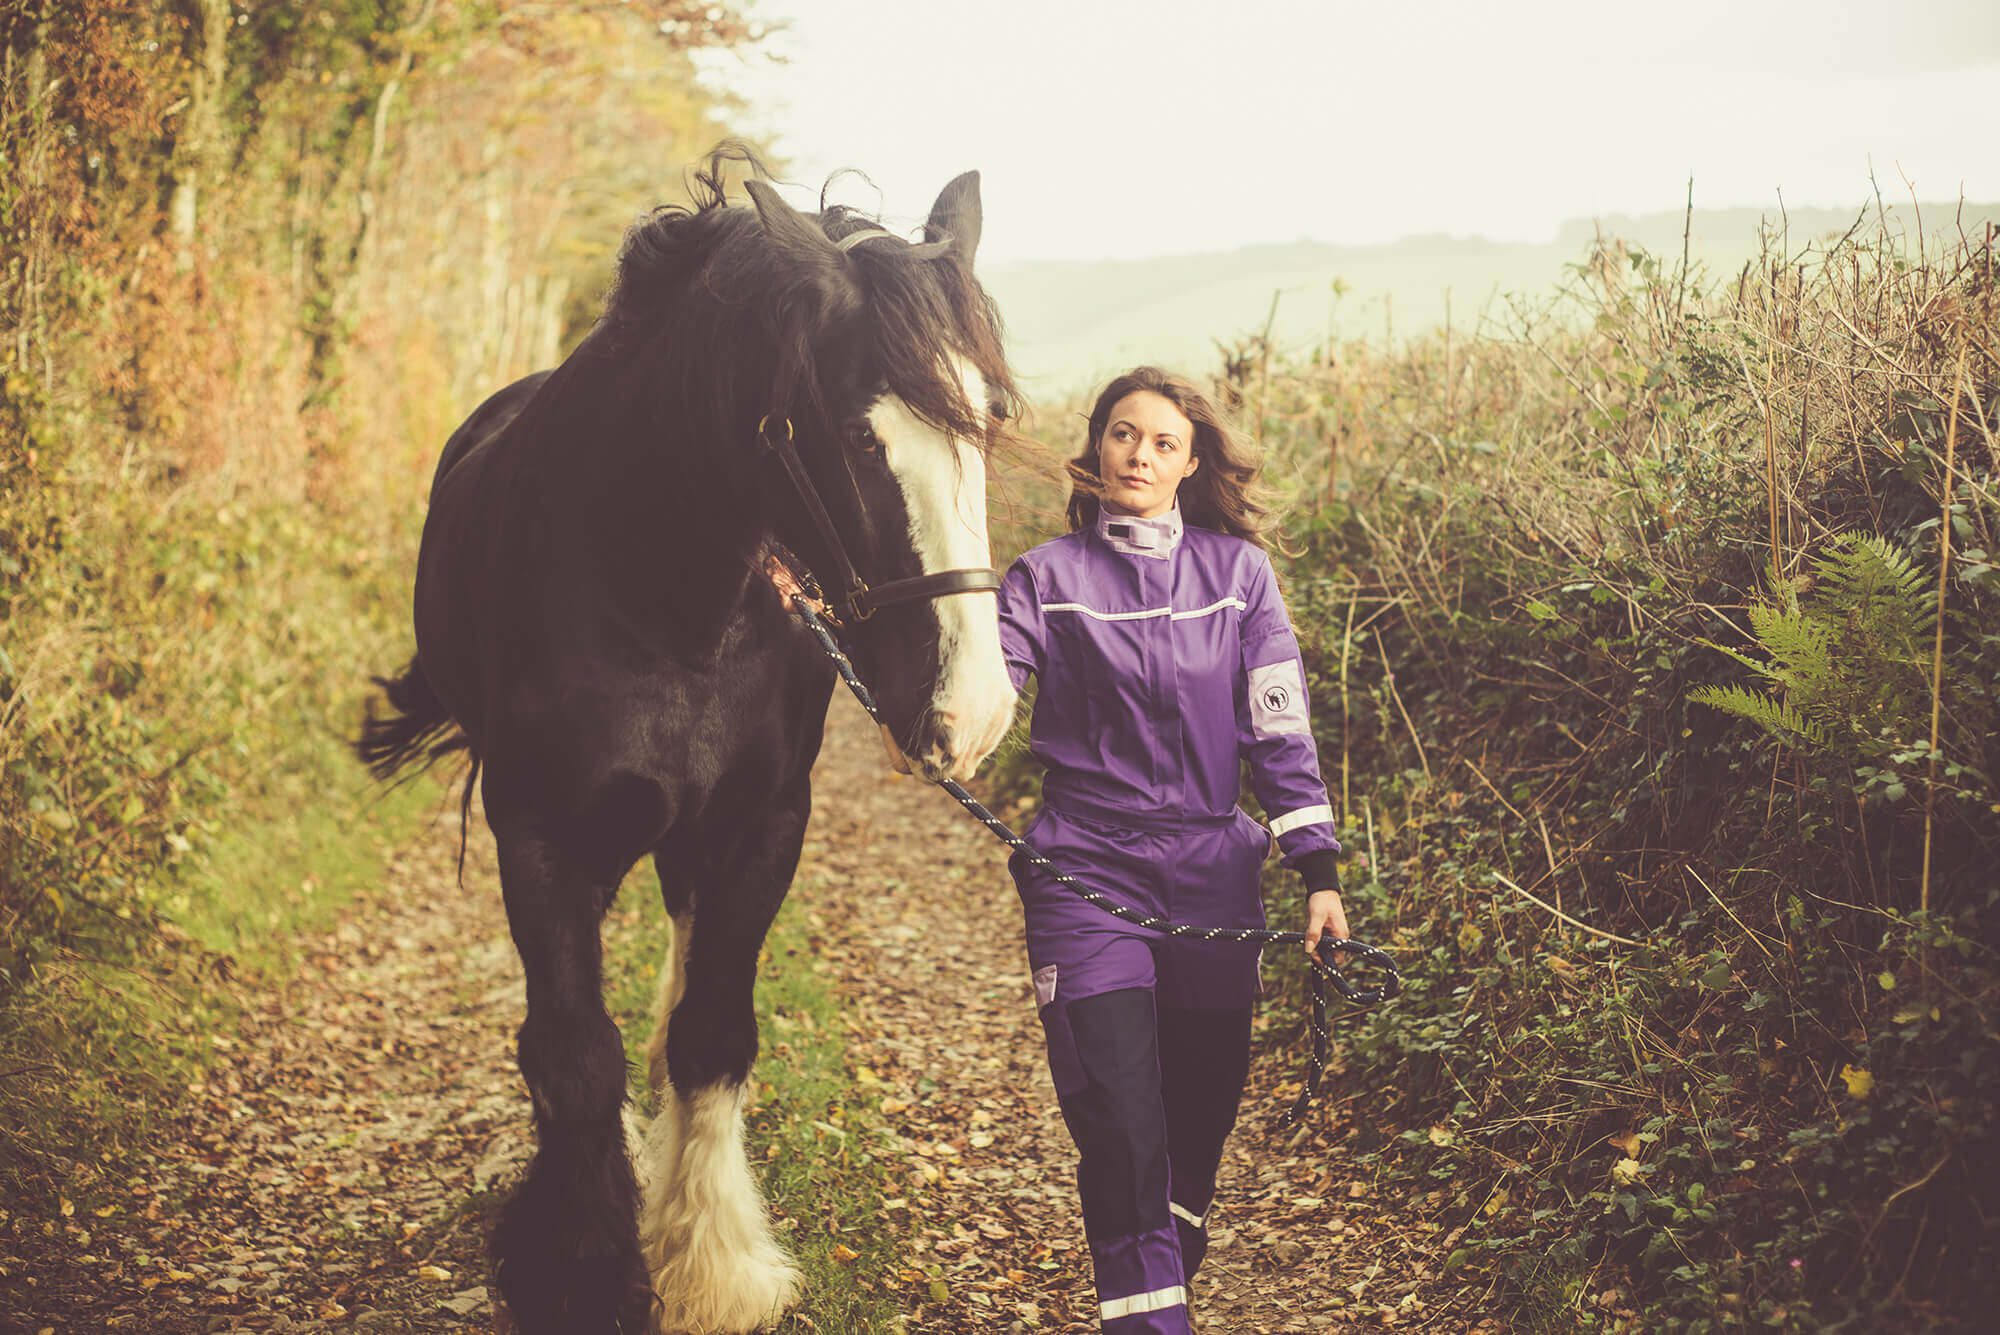 product-life-img-horse-&-a-woman-in-purple